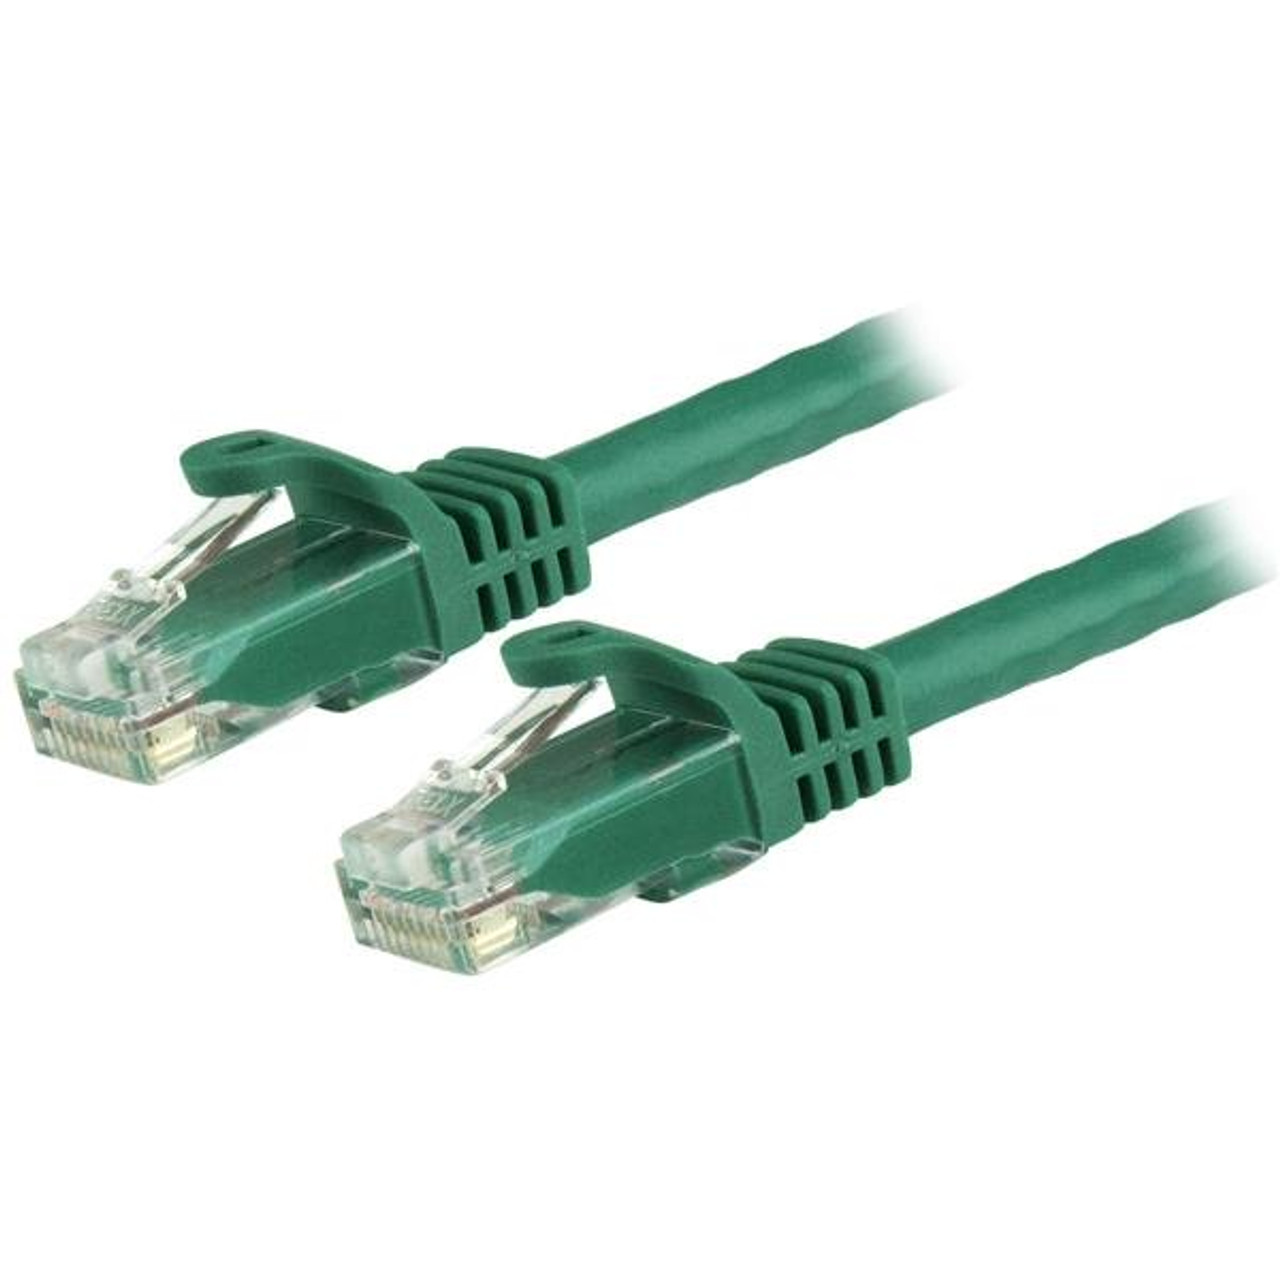 Image for StarTech 7m Green Cat6 UTP Snagless Patch Cable CX Computer Superstore